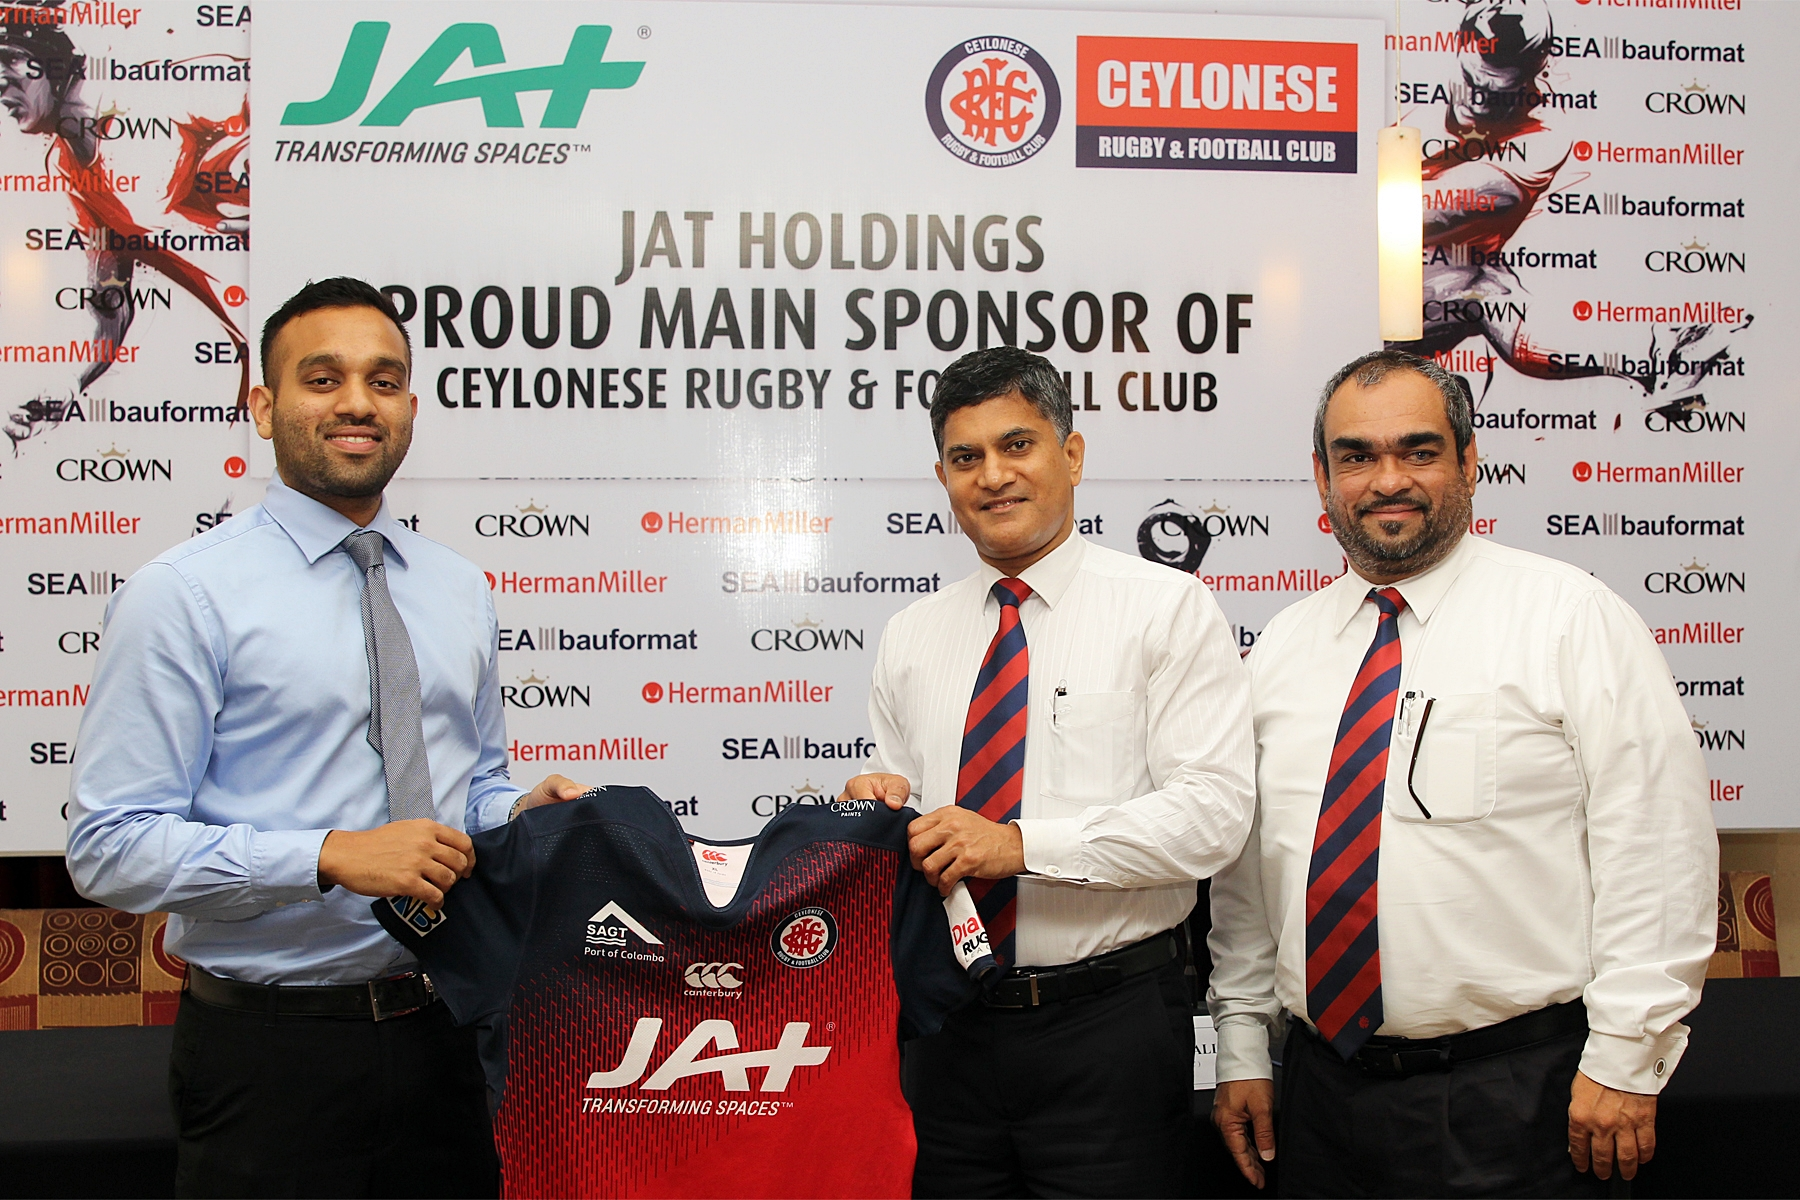 JAT HOLDINGS WAS AT THE BIG5 EXHIBITION HELD IN DUBAI